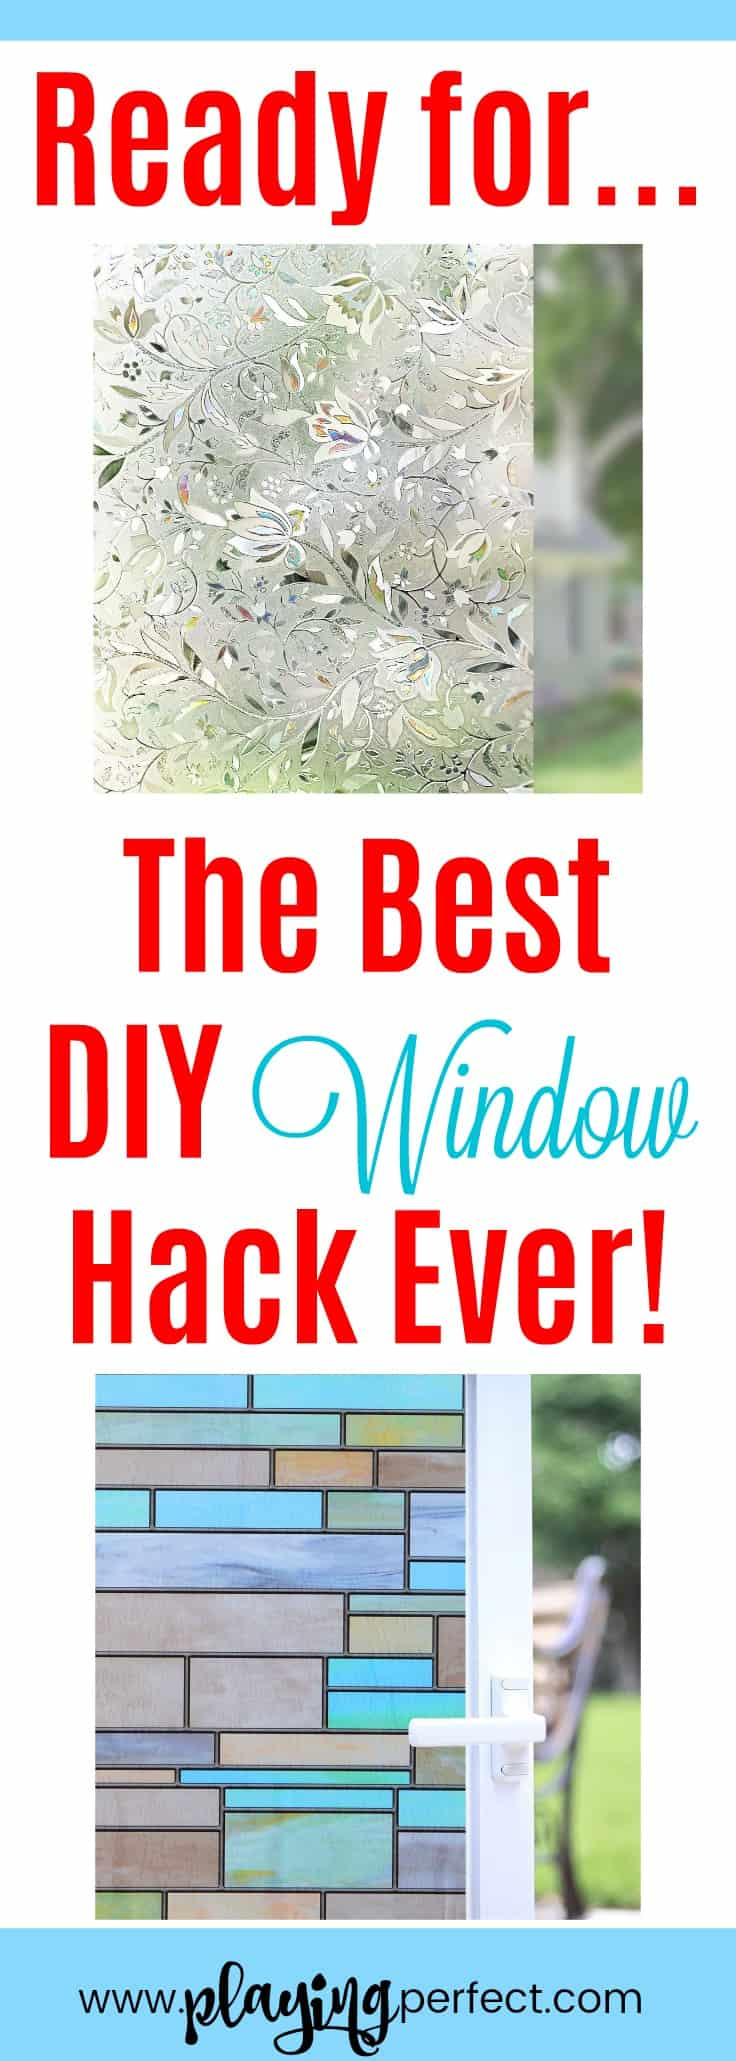 Wow Window Film Is The Best DIY Window Hack Ever   Playing Perfect